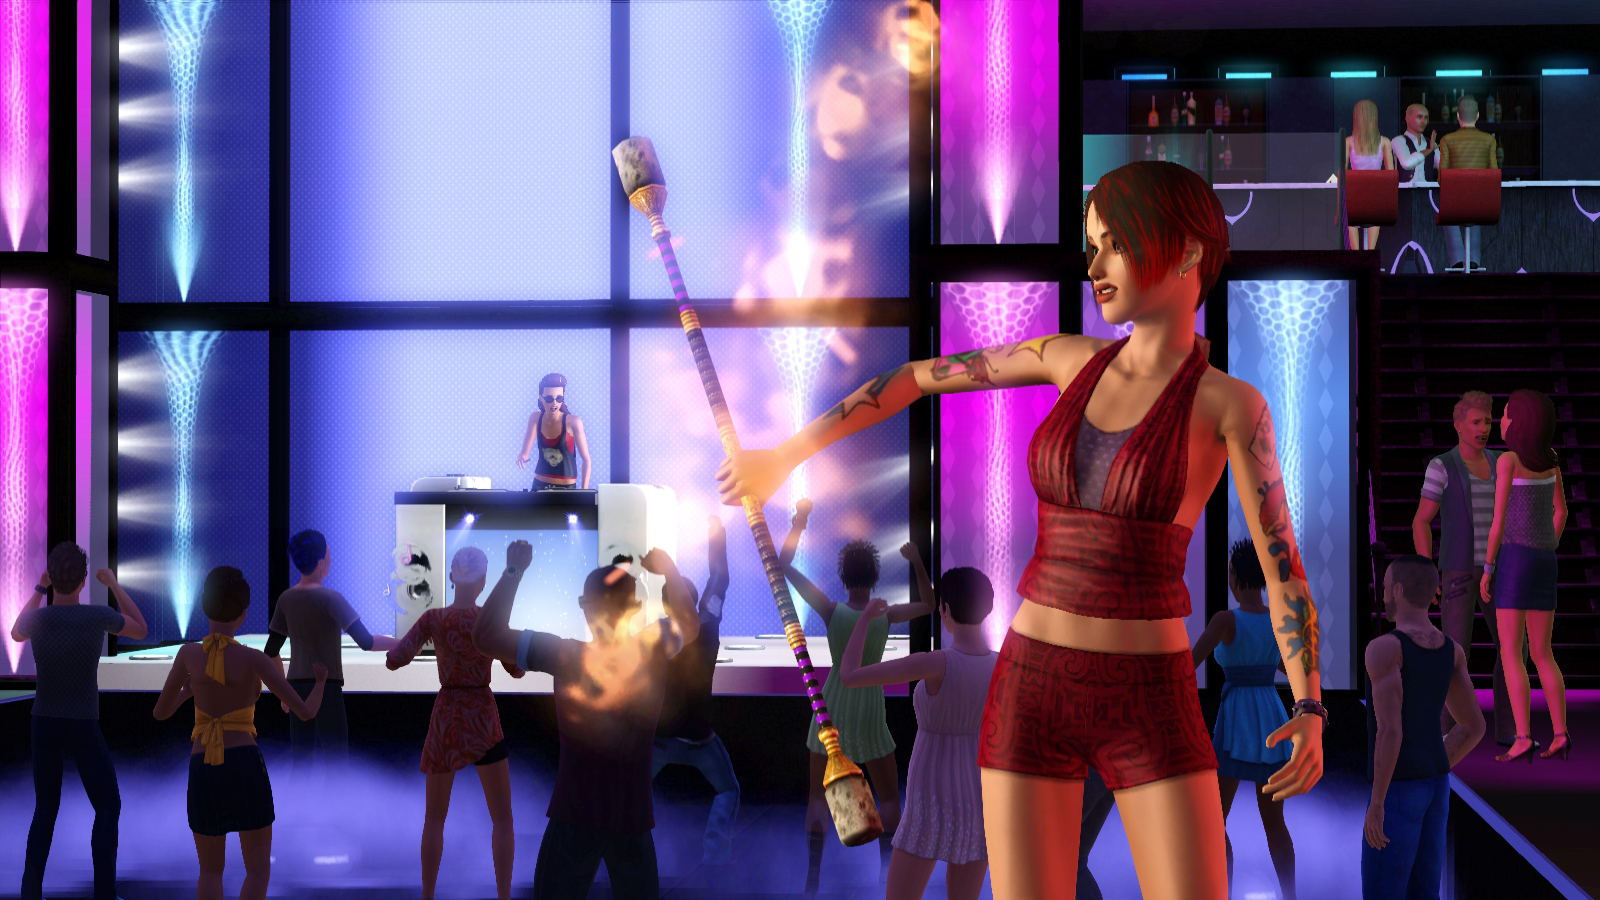 sims 3 showtime dating The sims franchise has always been one that provides players with an open- ended, sandbox gameplay that allows the user to create their own journey sure .